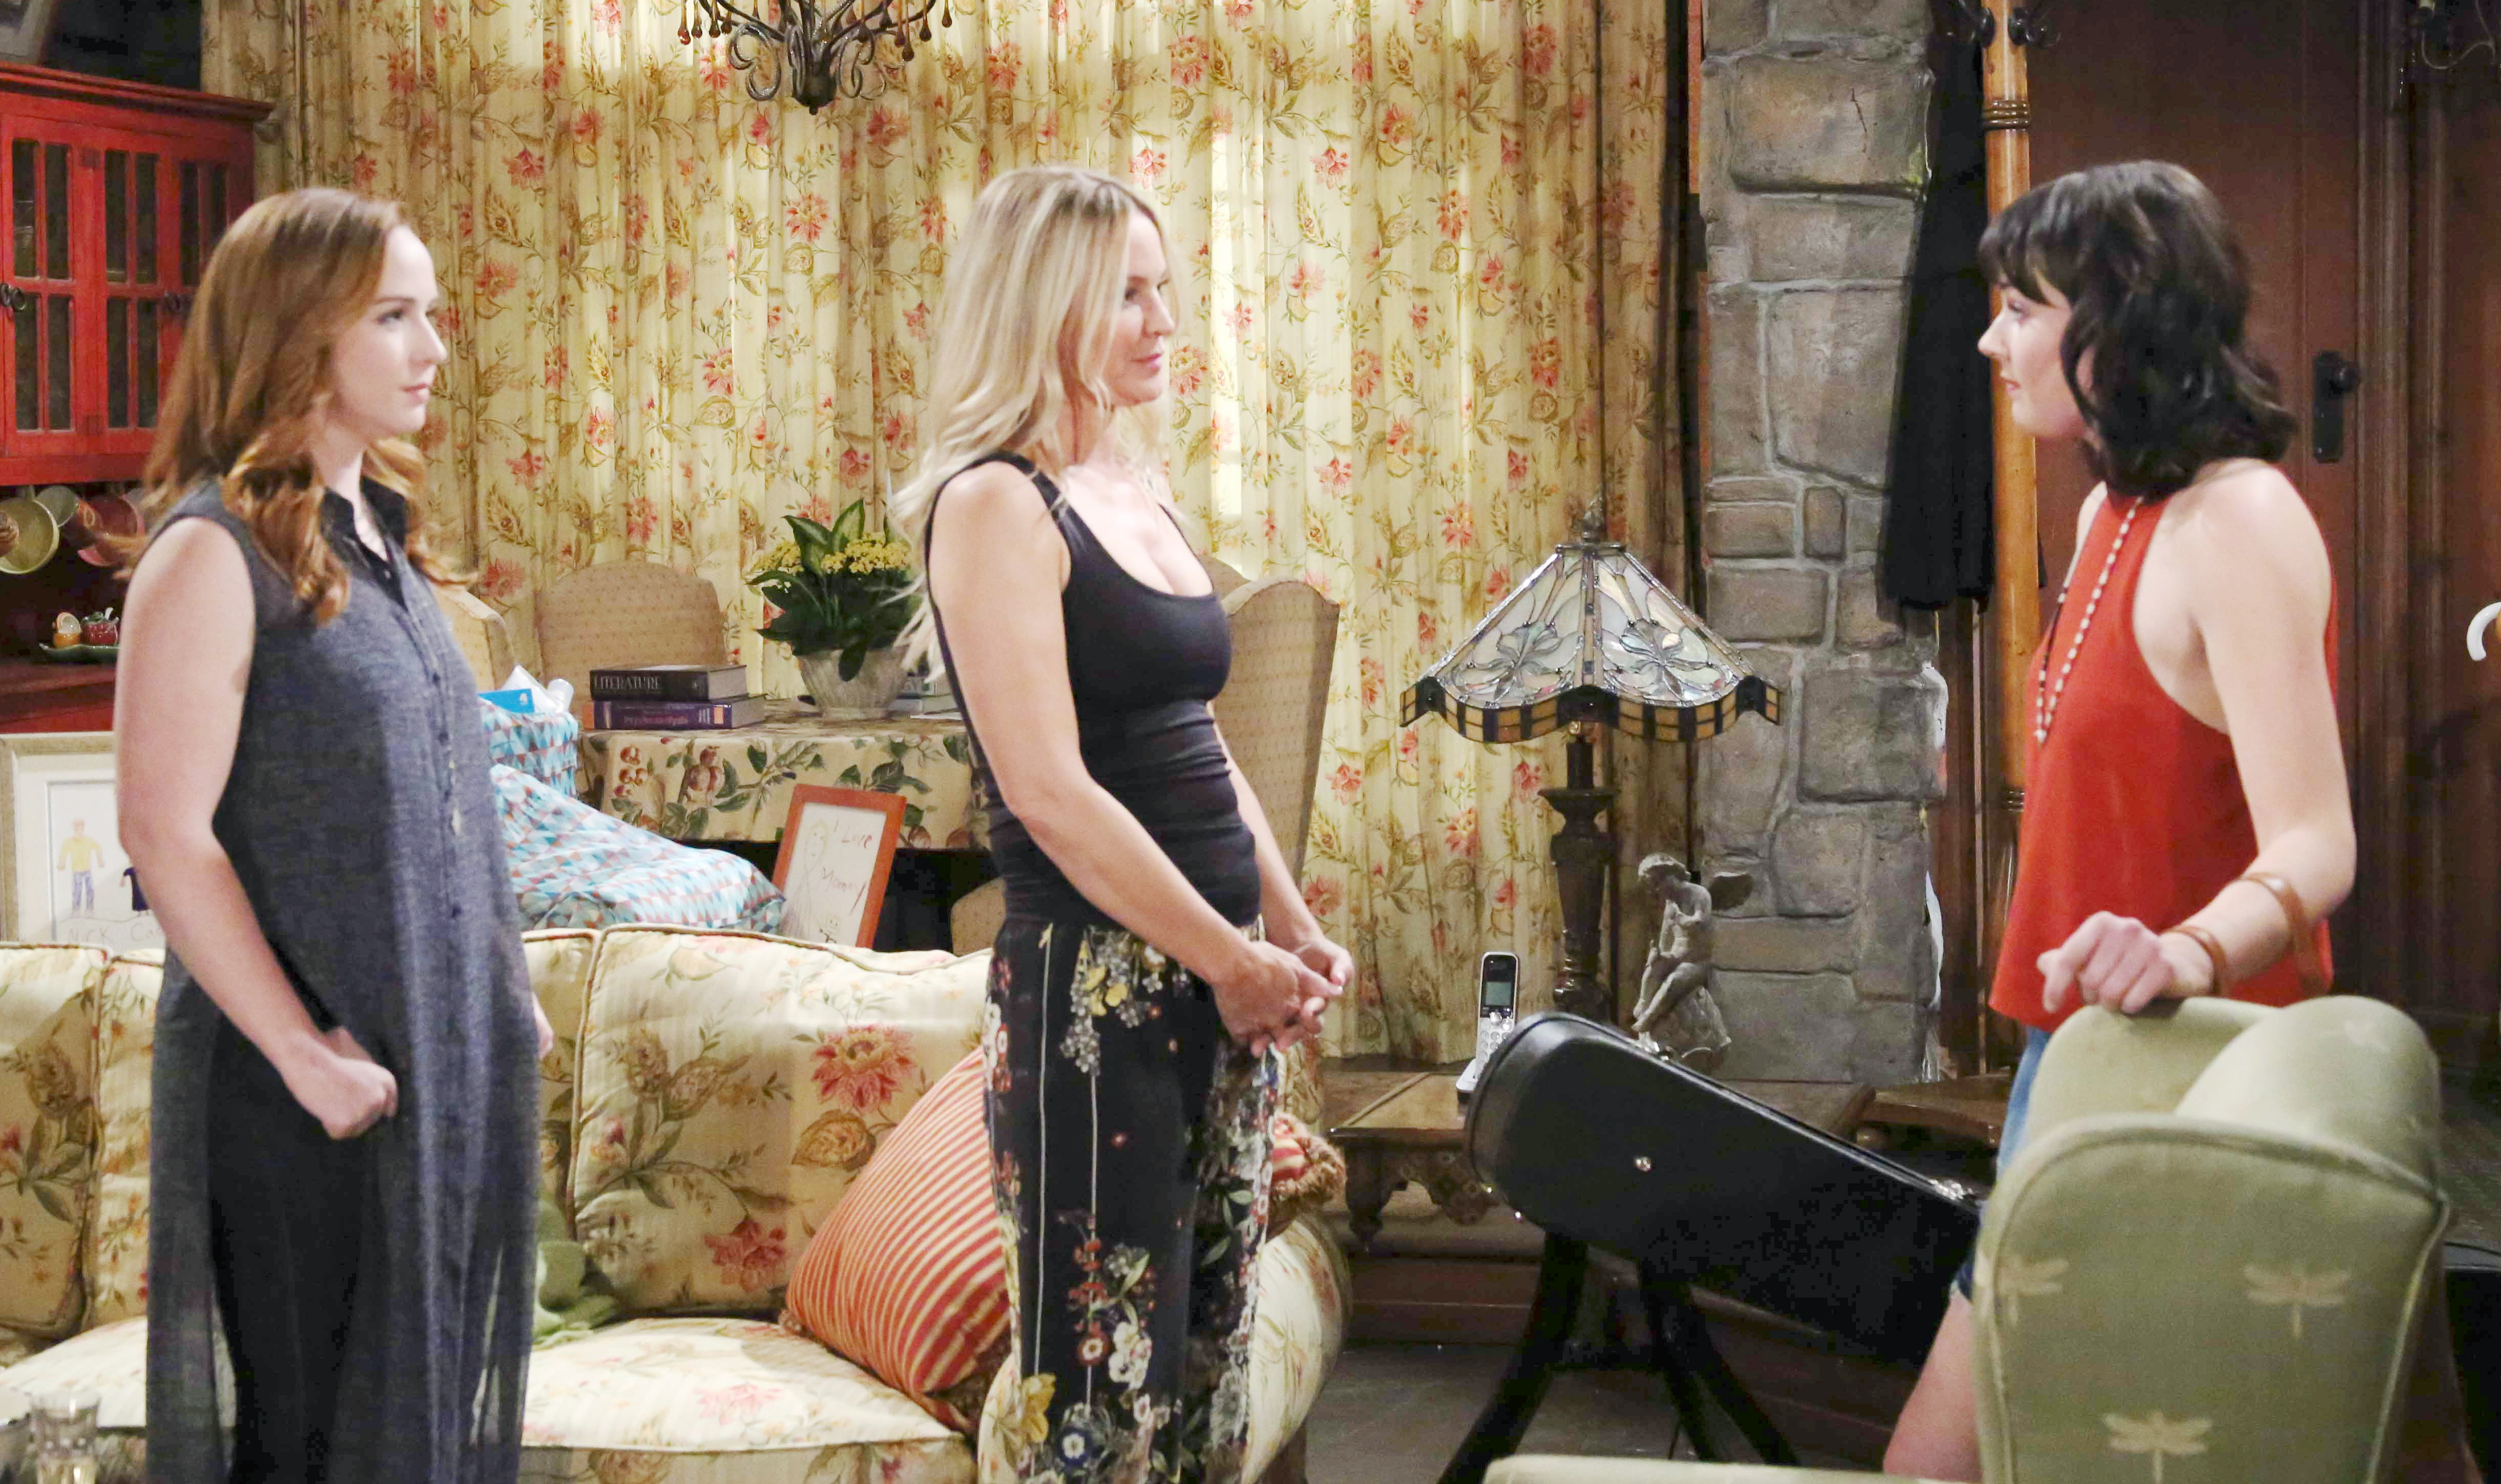 Sharon makes a startling connection on The Young and the Restless